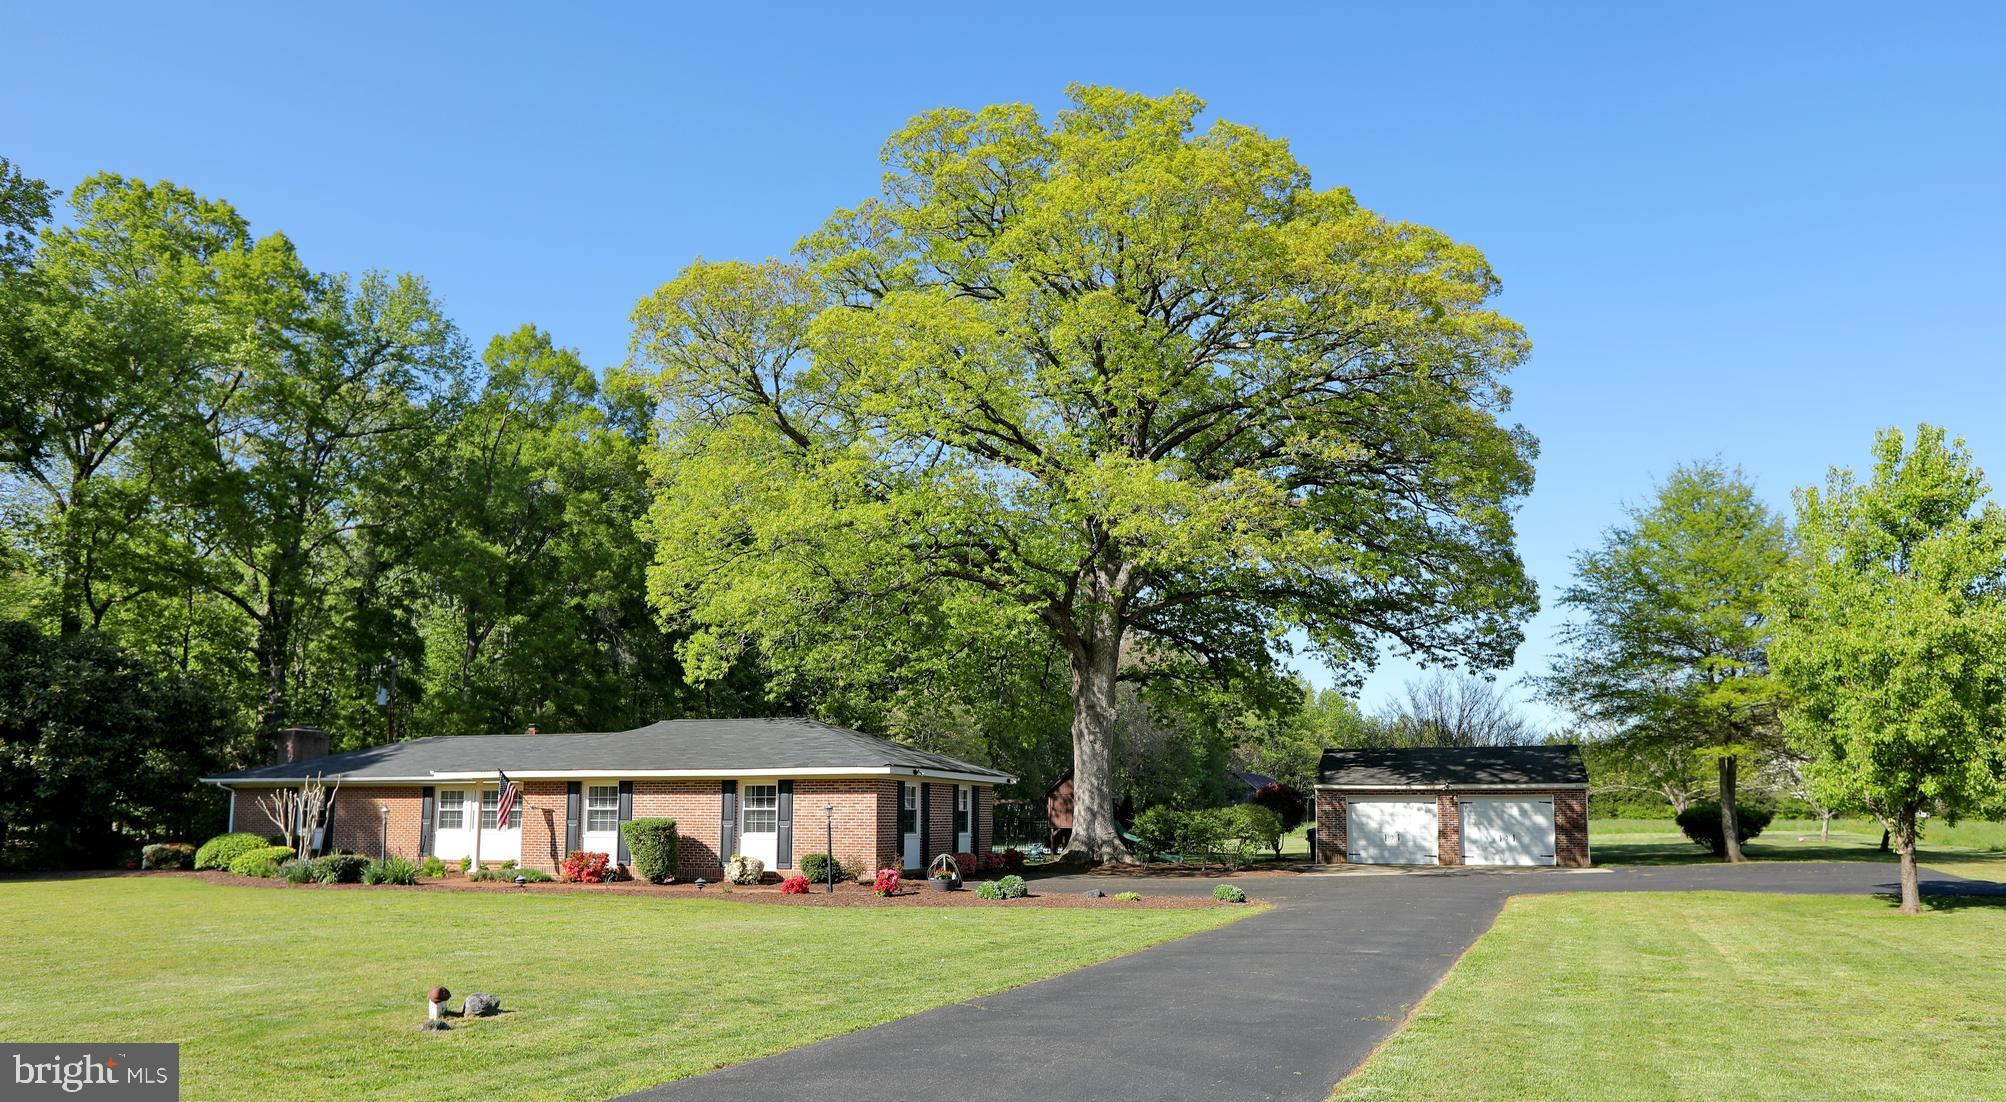 NO HOA*NO RESTRICTIONS*THE COUNTRY CLUB LIFE WITH NO FEES AND NO NEIGHBORS*ALL BRICK RAMBLER ON 1.7+